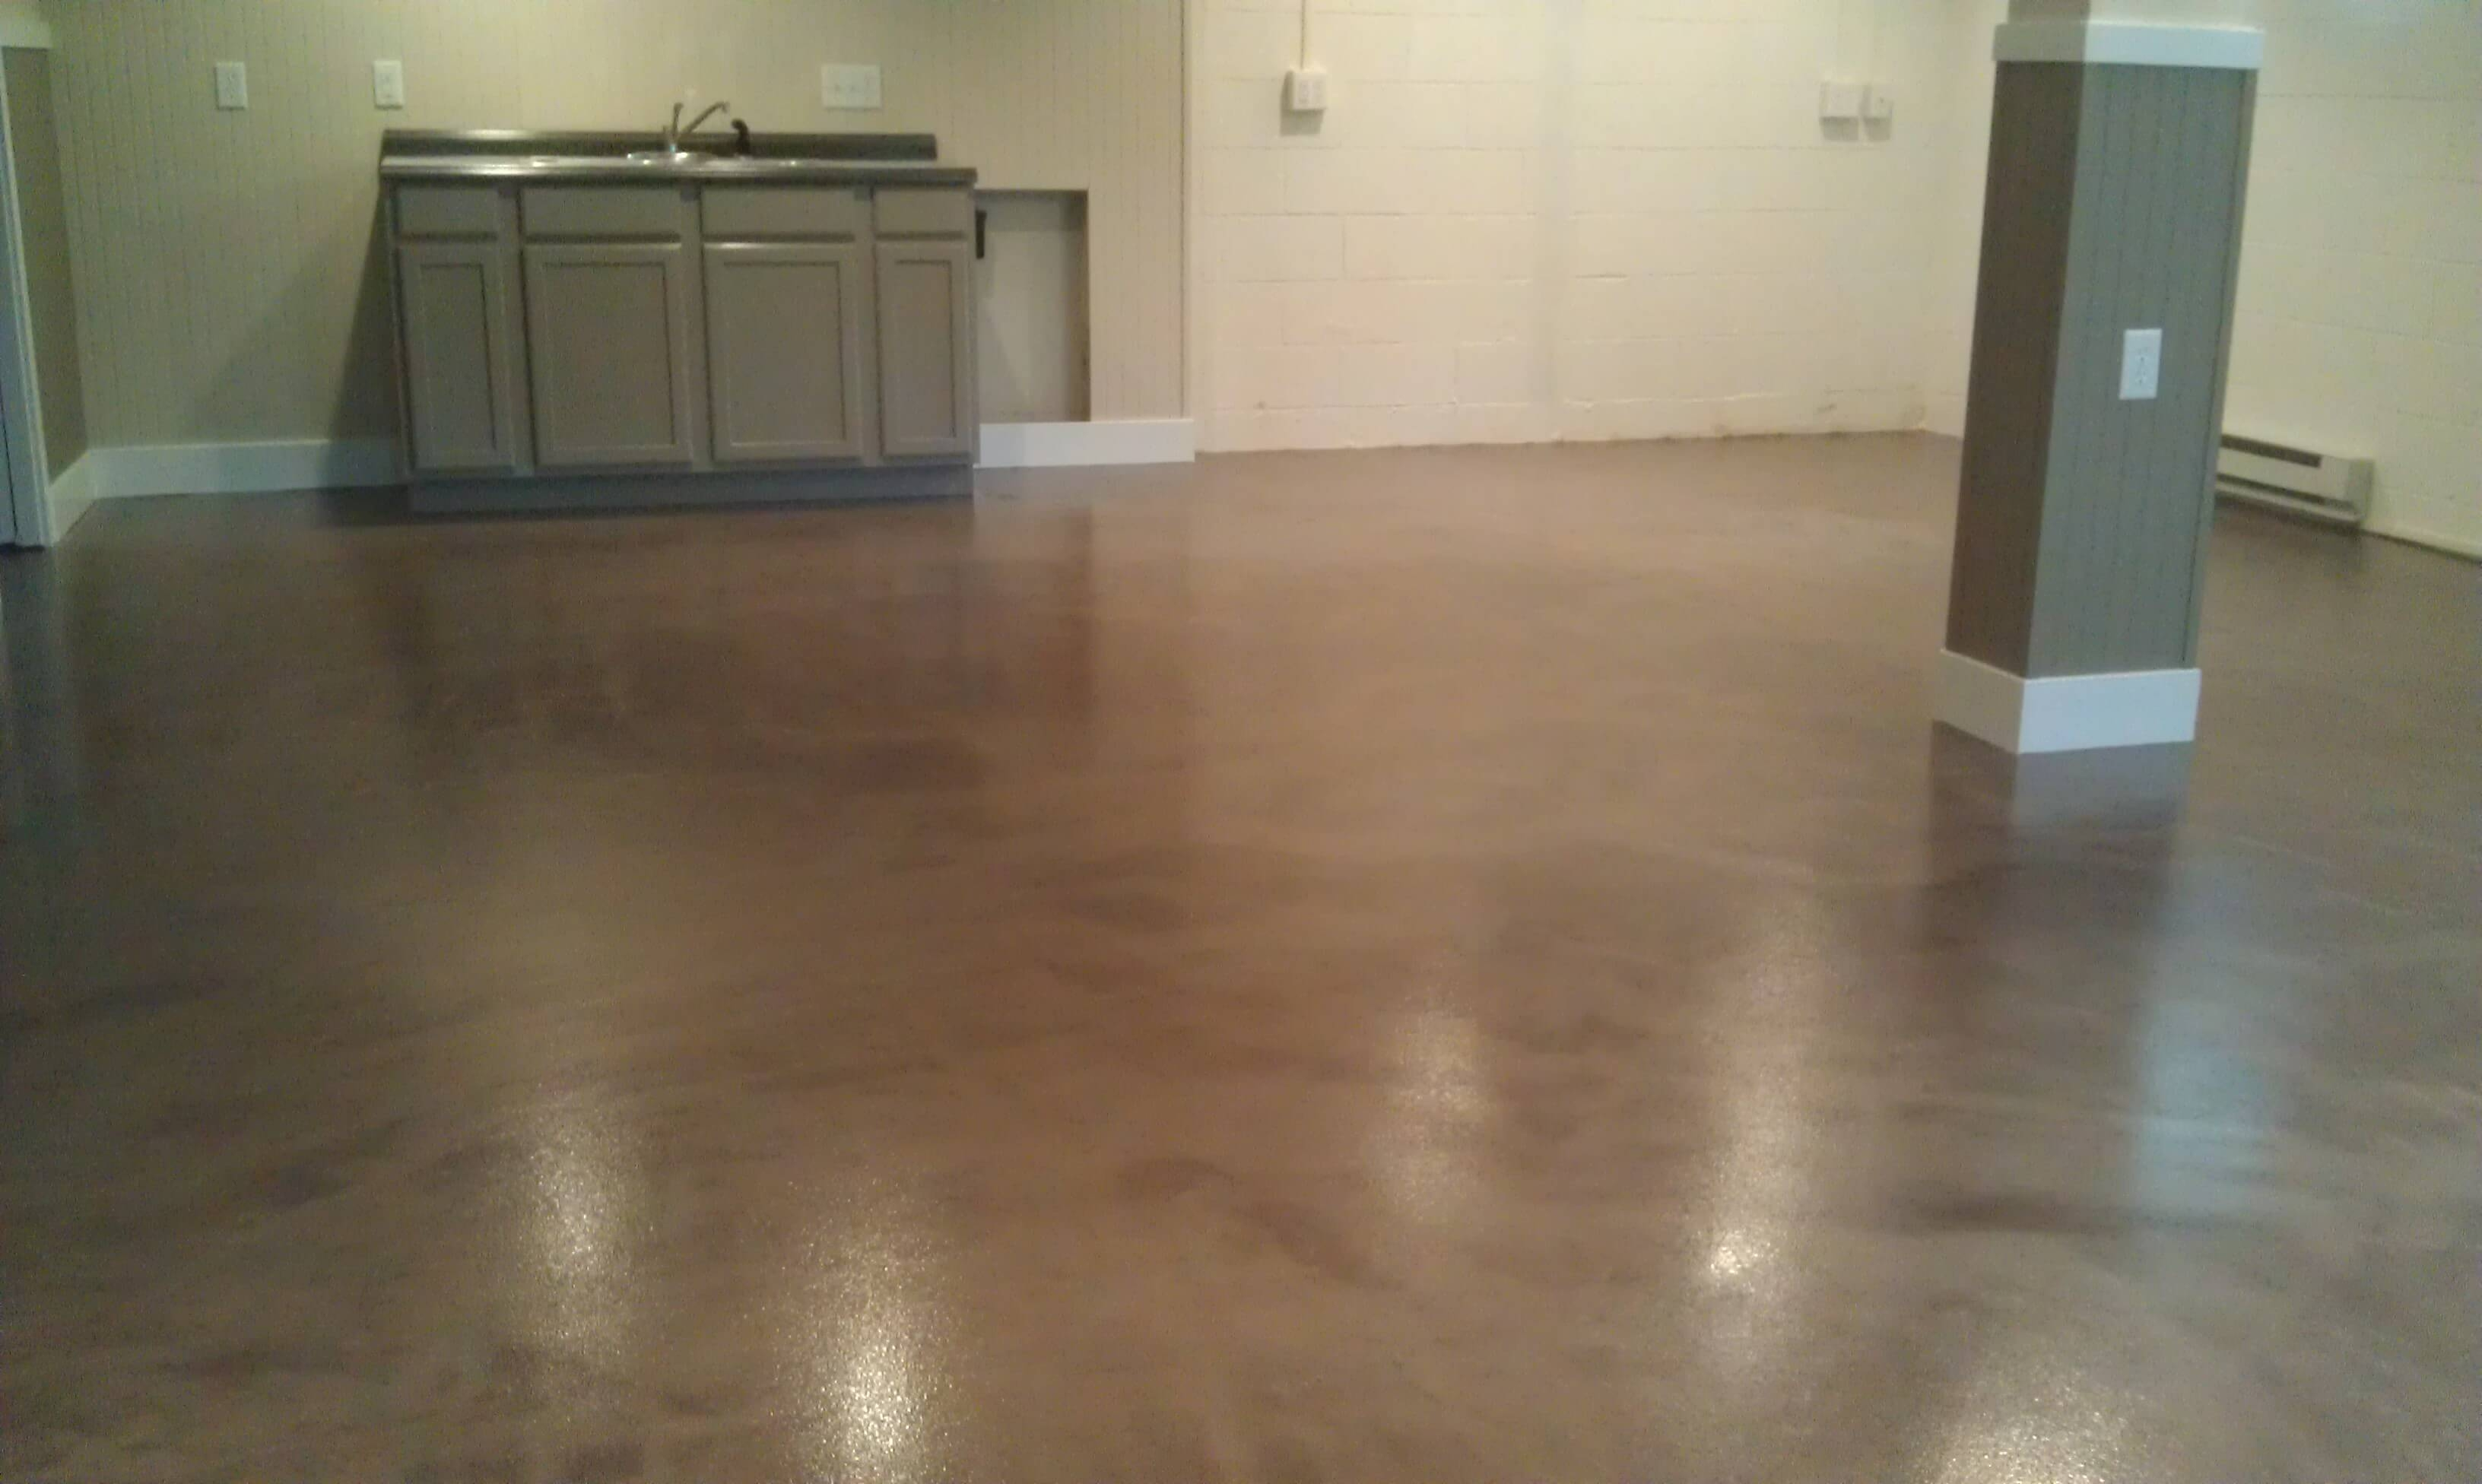 Epoxy Coating For Basement Floors